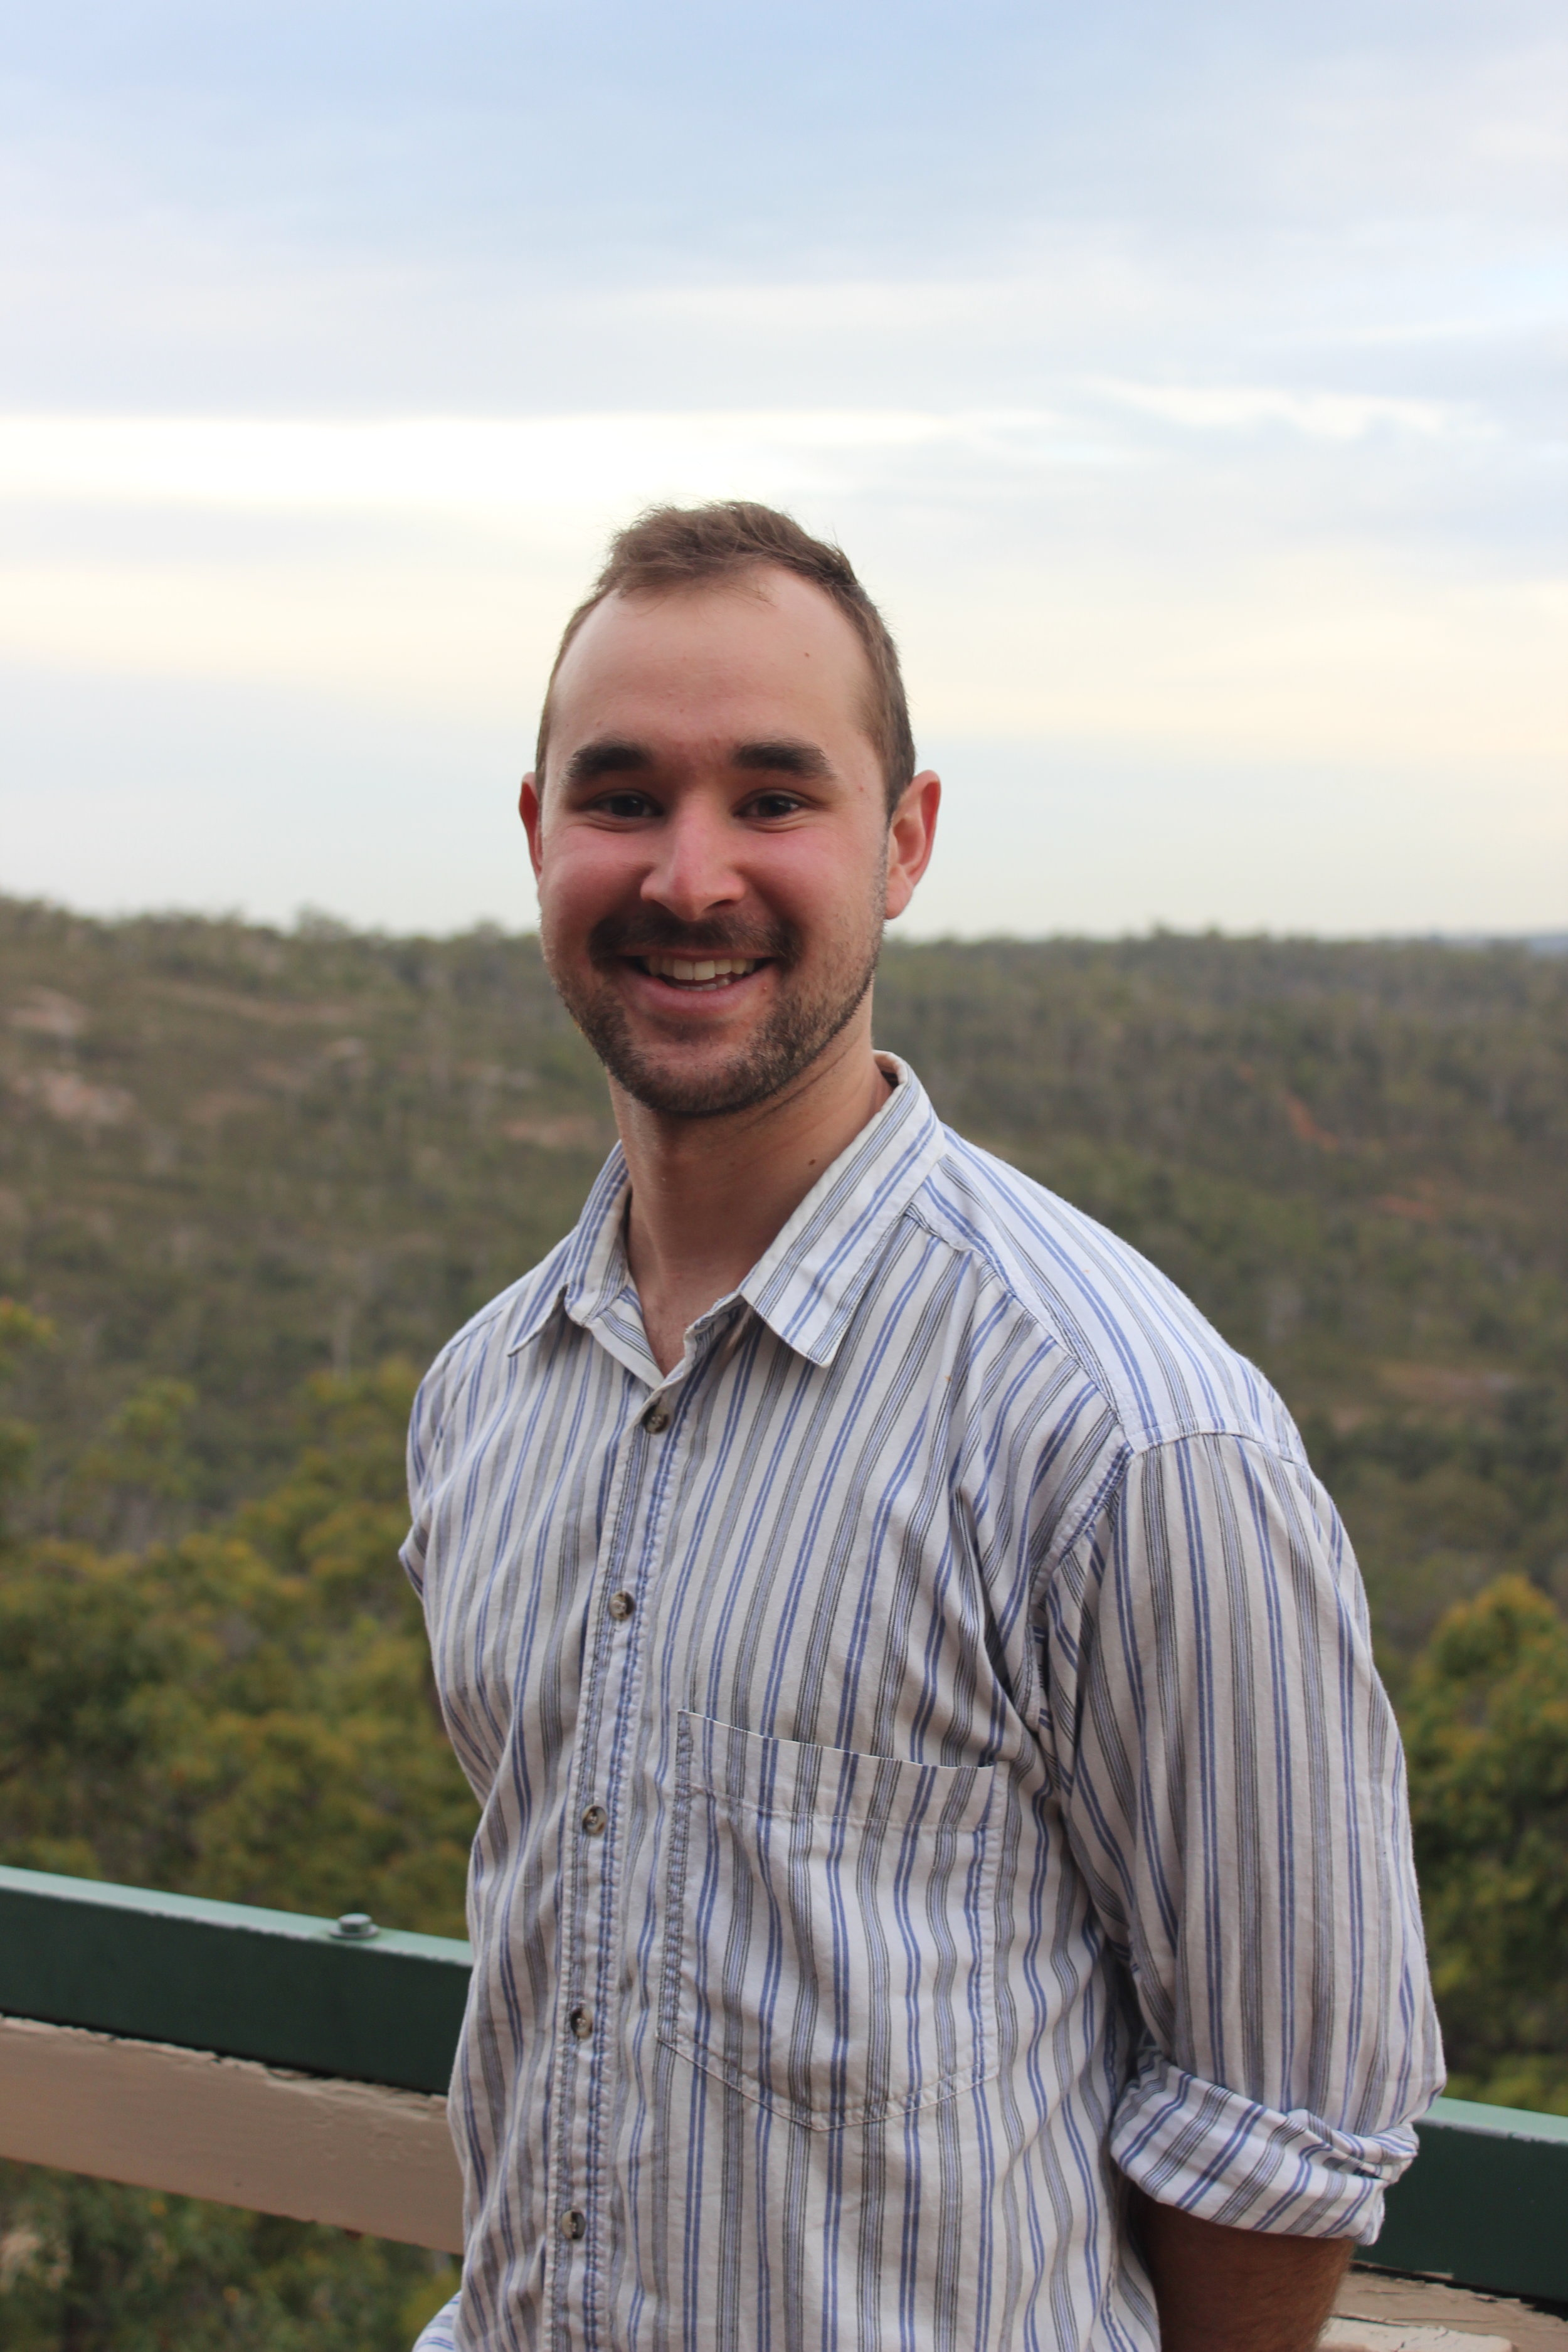 Hi, my name is Callum. Originally from Busselton, this will be my 3rd year of calling St George's home and my first year as an RA. I am also in my 3rd year of studying Sport Science and Exercise and Health. In 2015, before moving to Perth for university, I undertook a Rotary Long-Term Youth Exchange to Denmark, just like Sarah Summers.